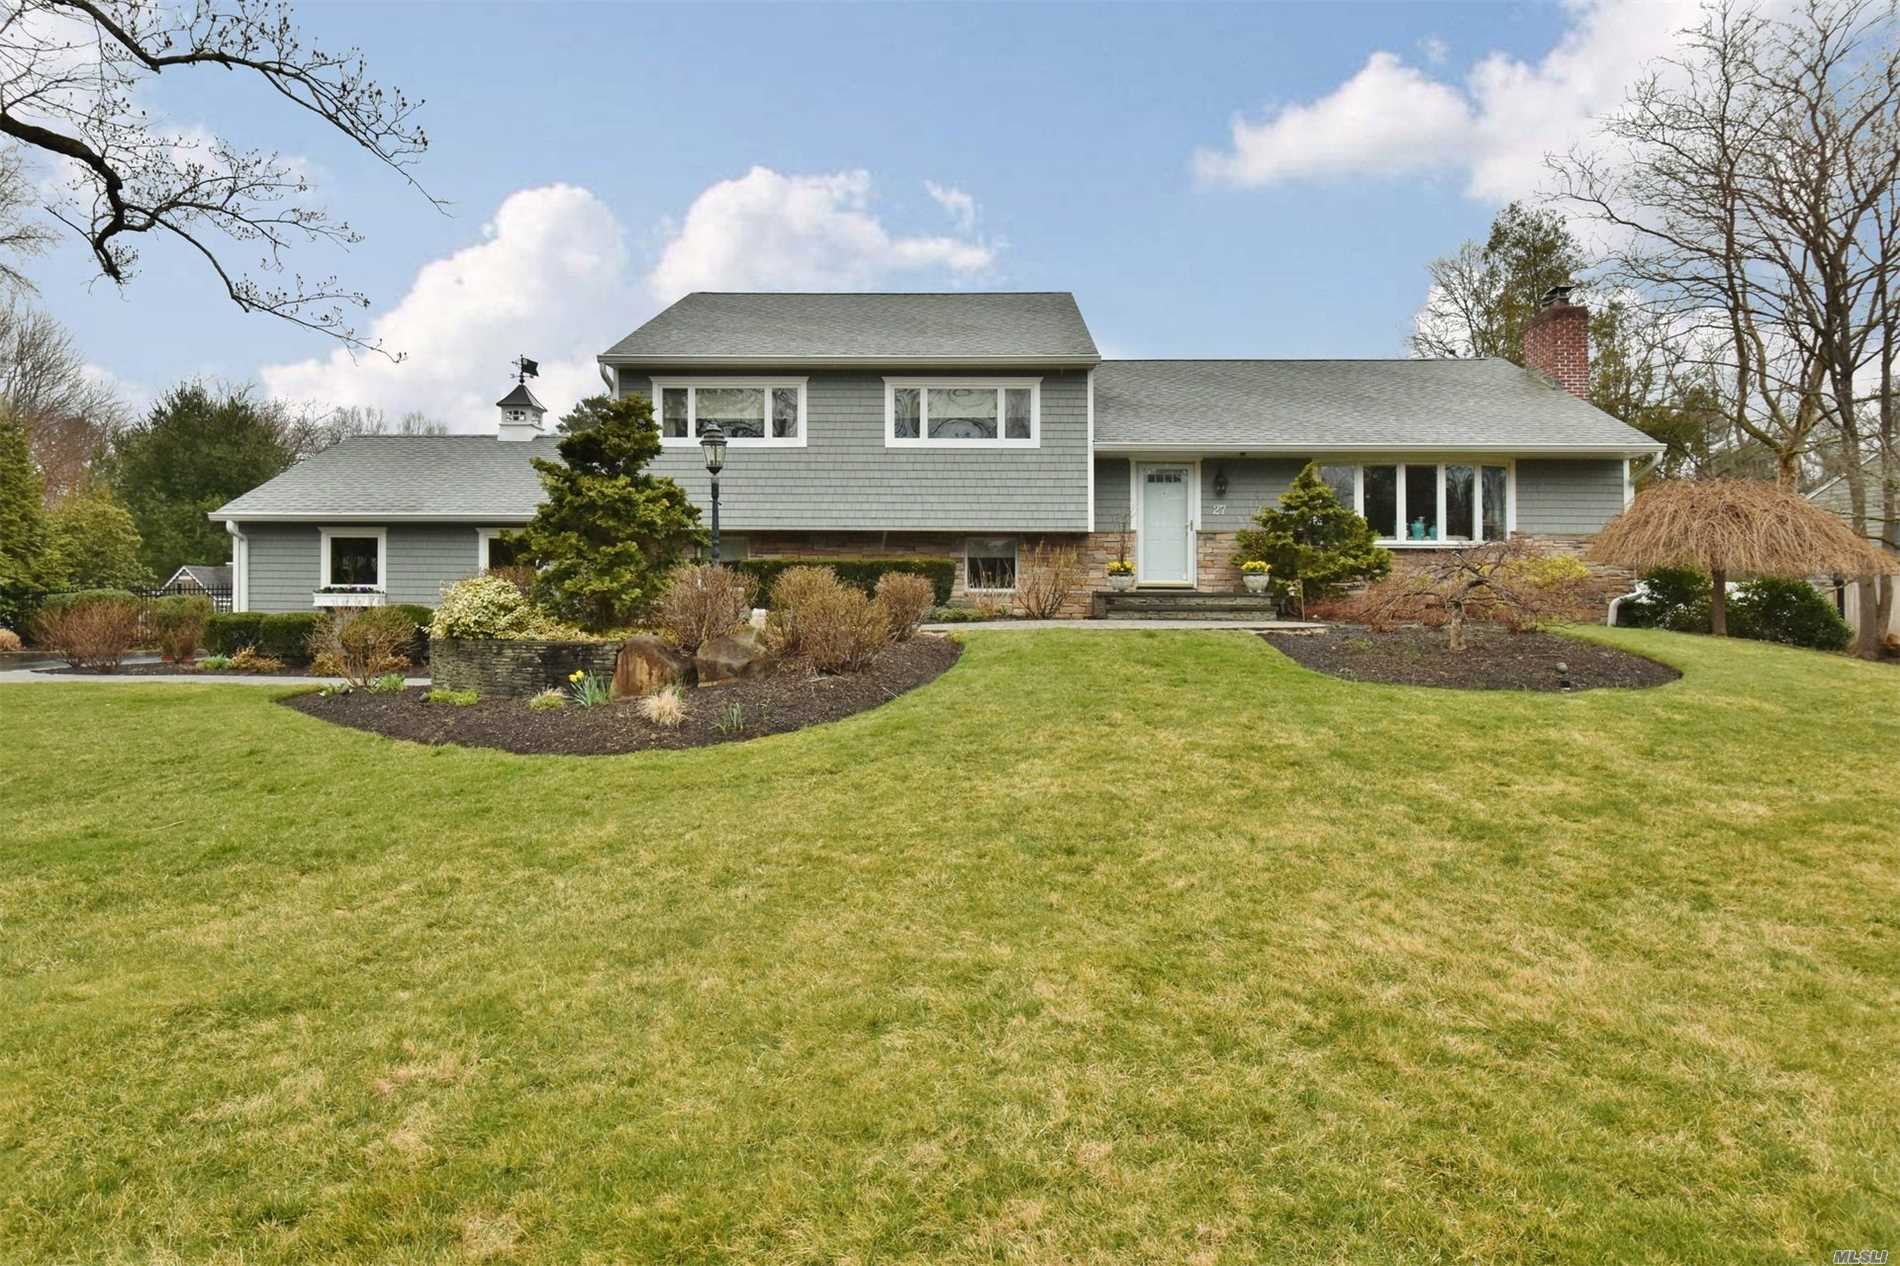 Entertainer's Dream Home located in Harborfields SD. Beautifully landscaped flat one acre property w/heated inground pool, patio and pergola. Sliders off kitchen to deck w/gas barbecue attached to home. 2 Gas Fireplaces, 3 Bedrooms, 3 Full Baths, Must See!